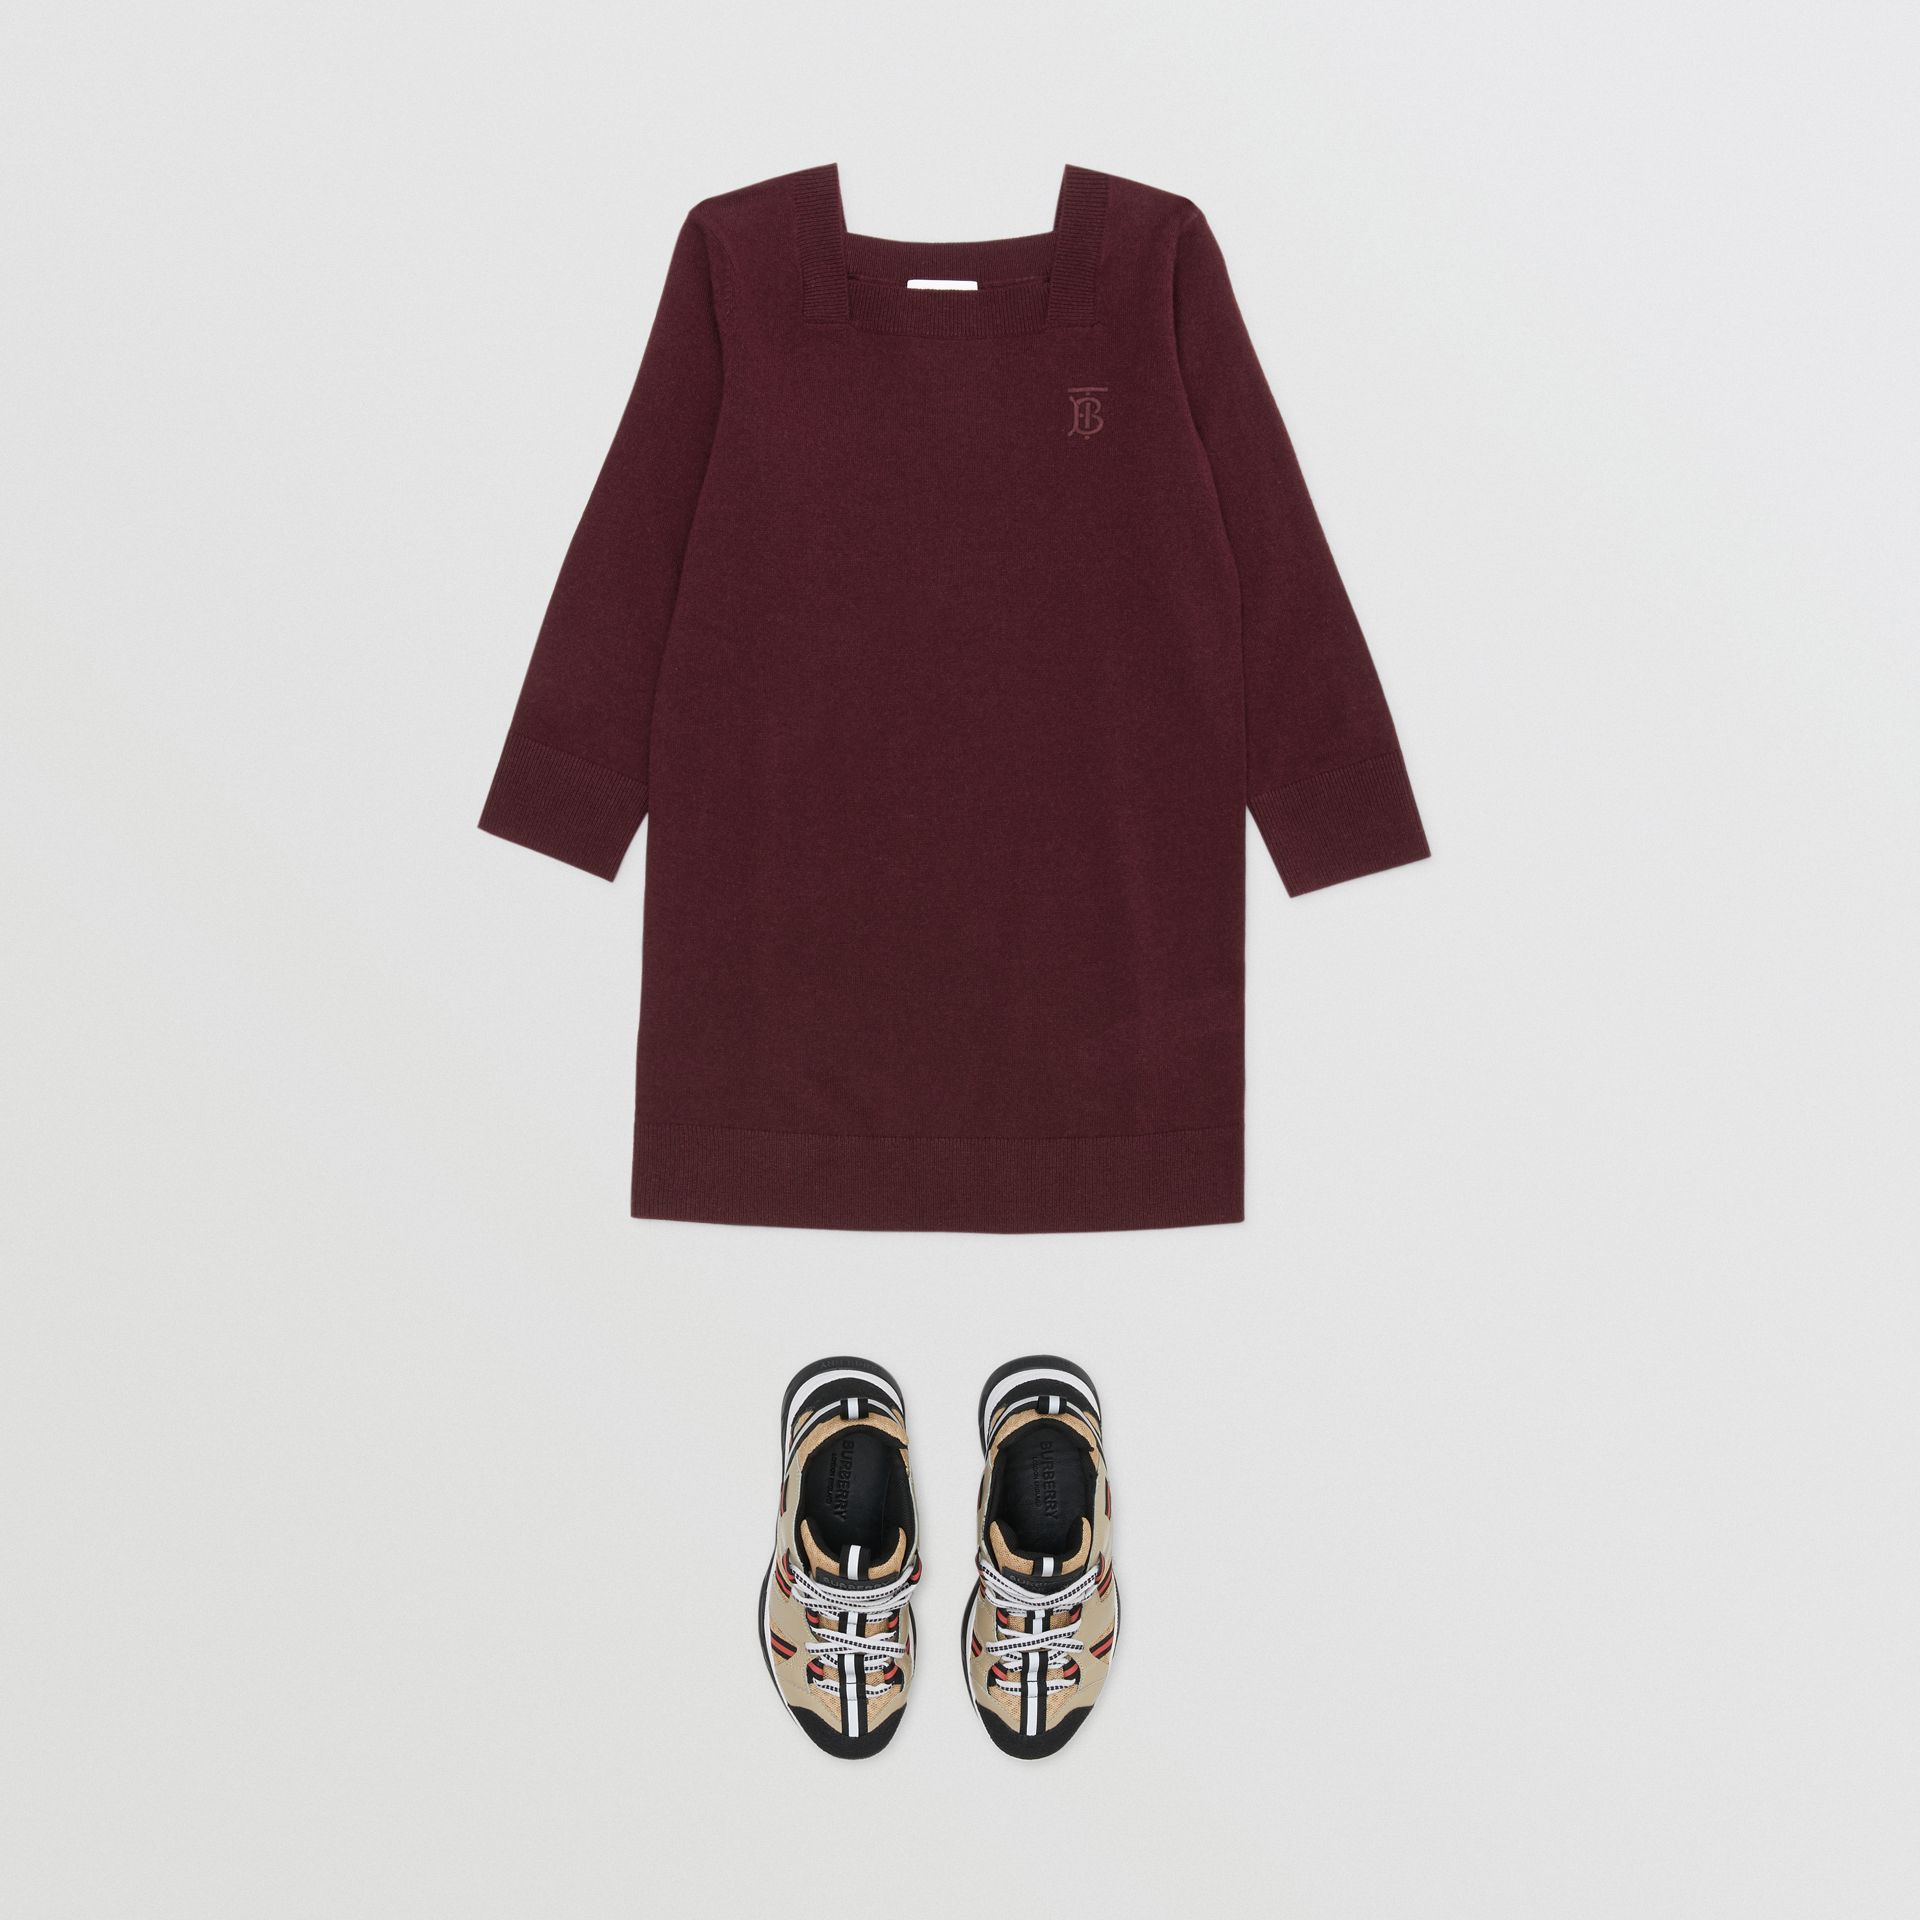 Monogram Motif Cashmere Sweater Dress in Burgundy | Burberry - gallery image 2